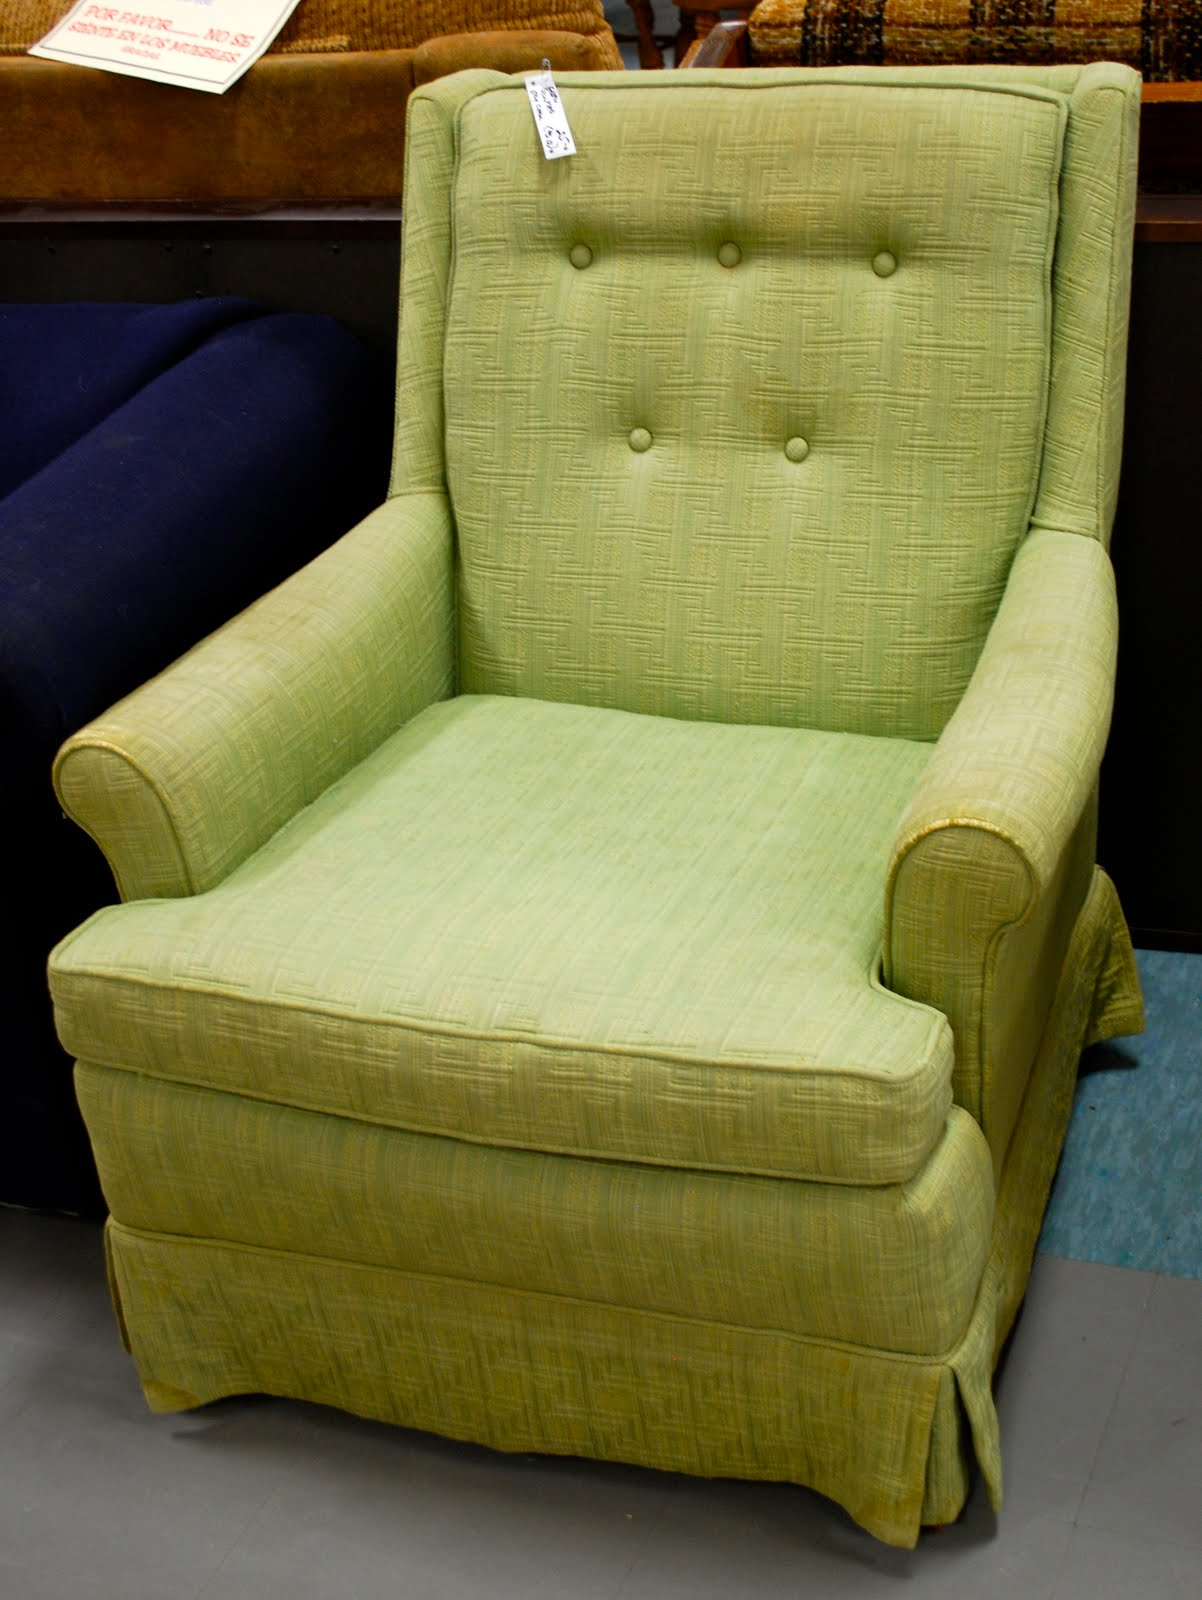 How Cute Would This Little Green Monster Be All Slipped In Canvas White  With A Pleated Skirt? I Can Picture It Now!